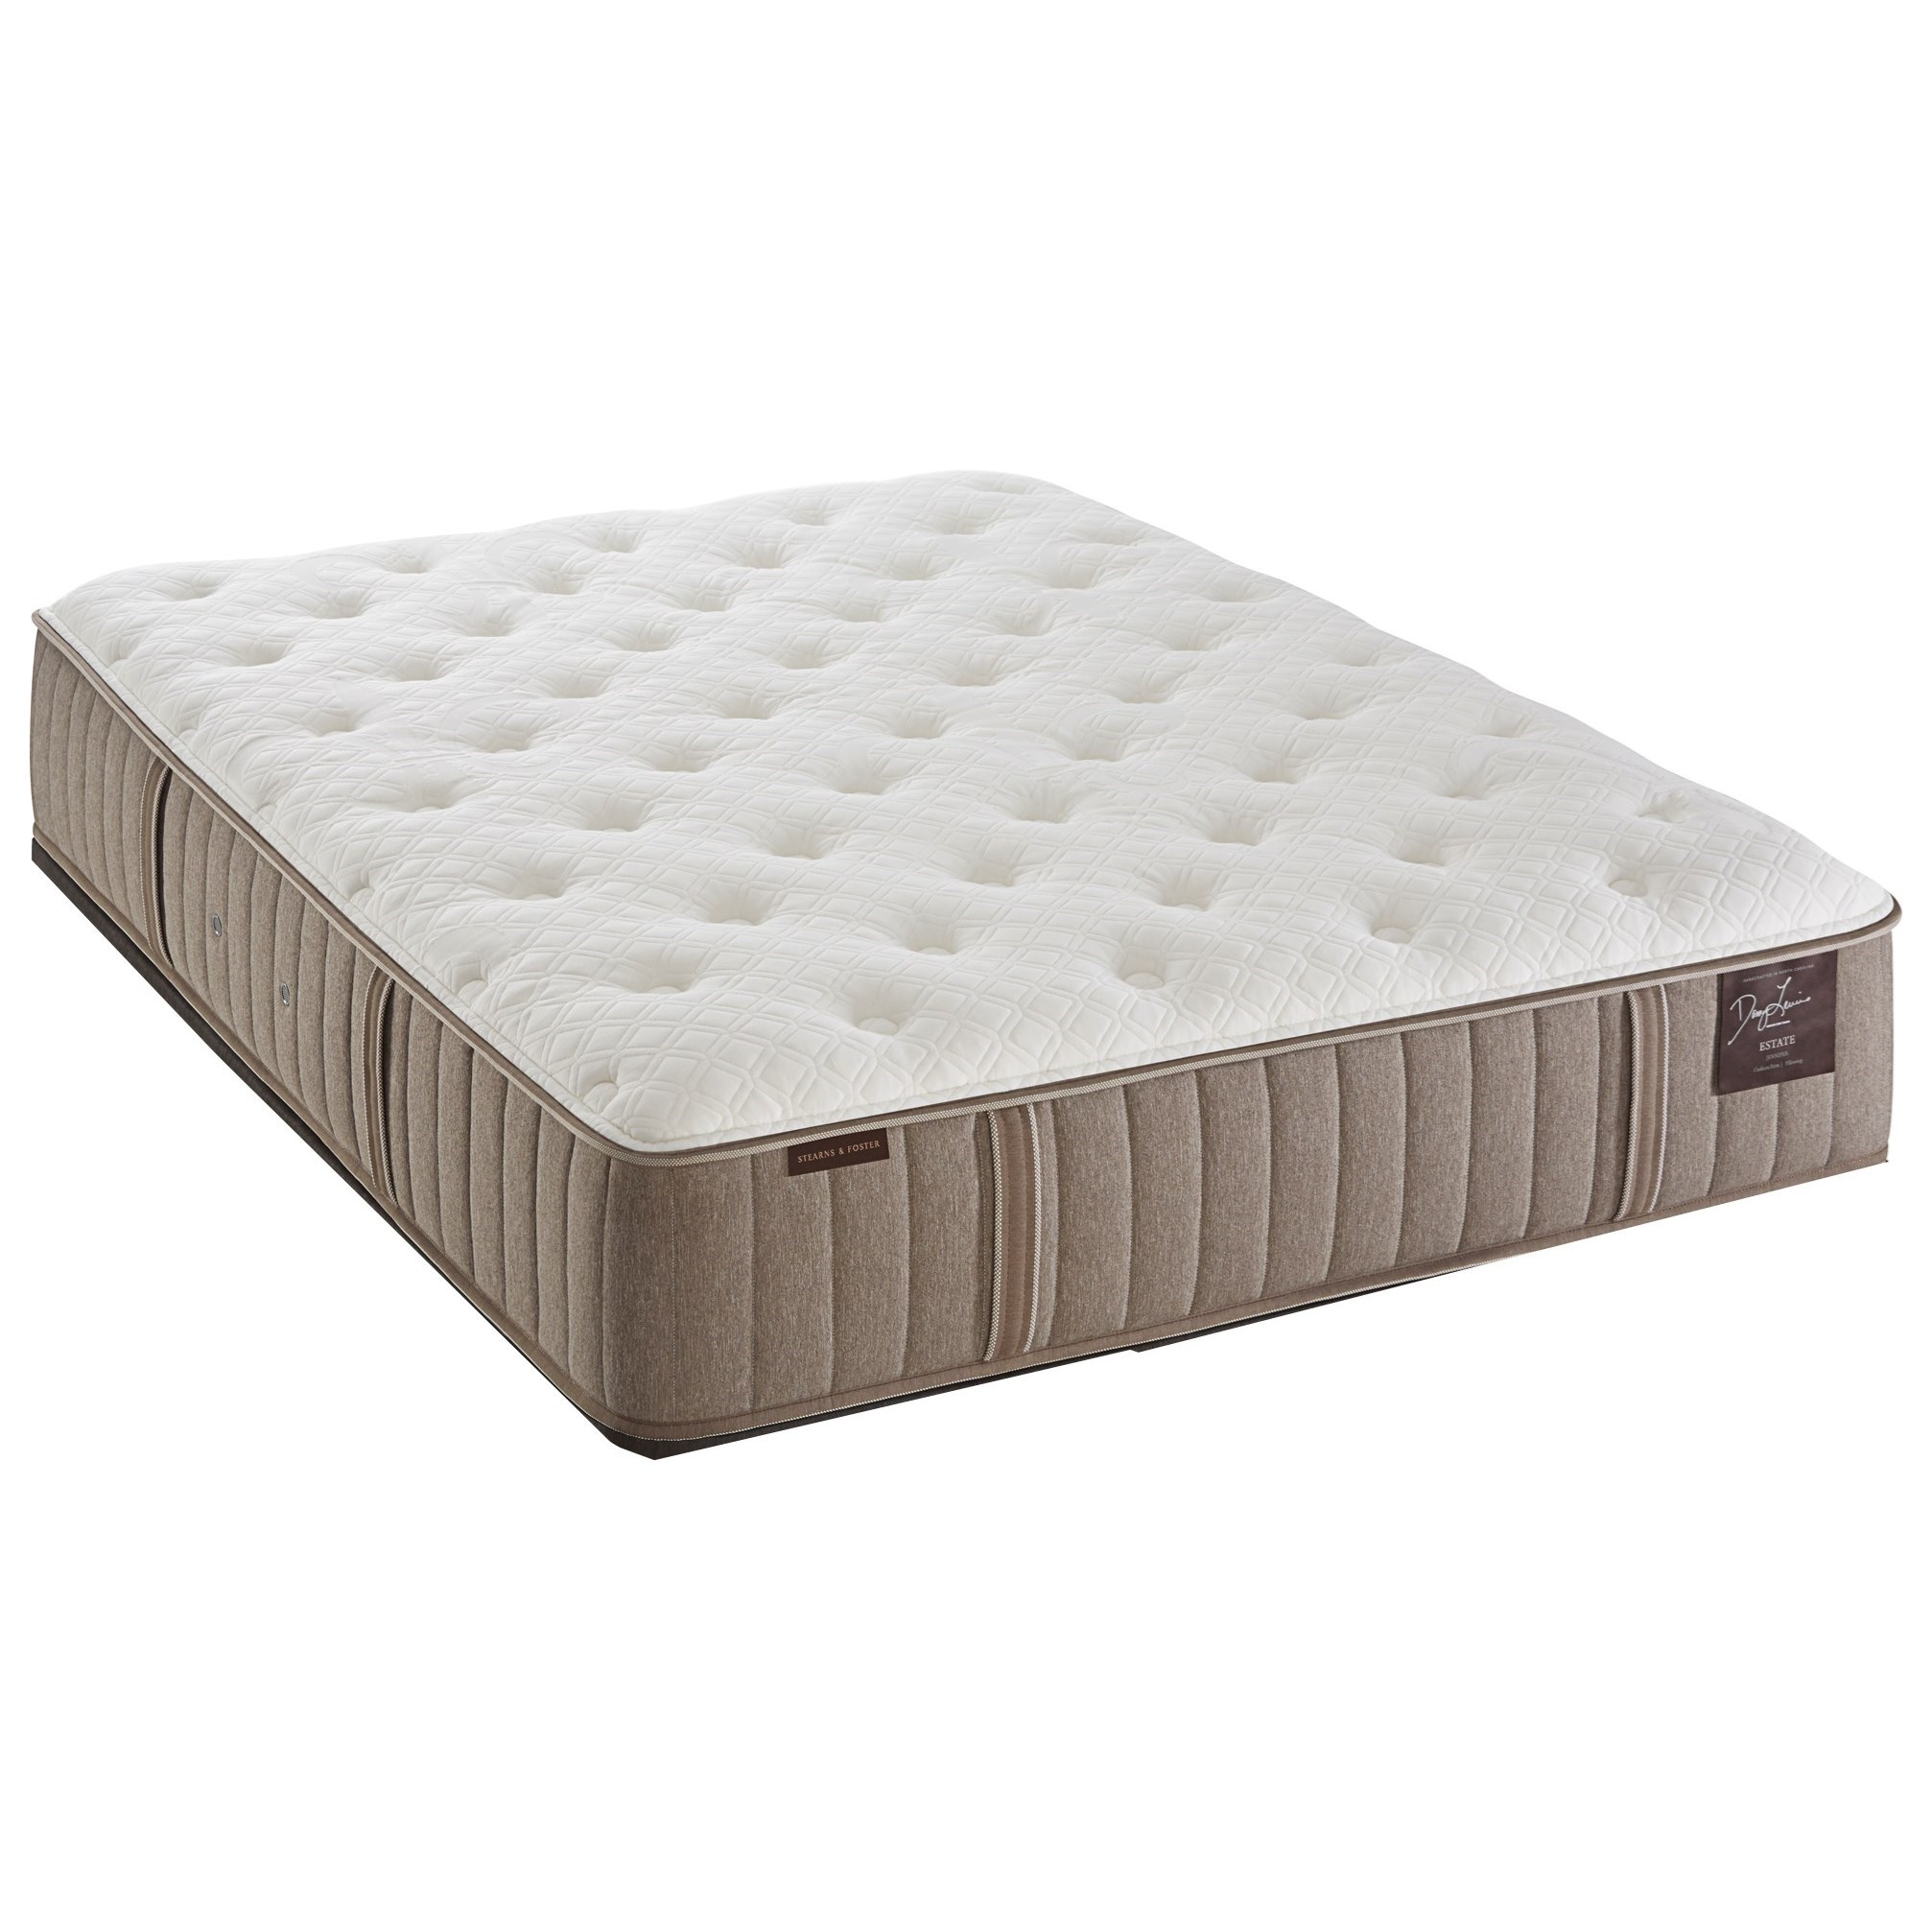 Stearns & Foster Scarborough Full Plush Tight Top Mattress - Item Number: Plush-F